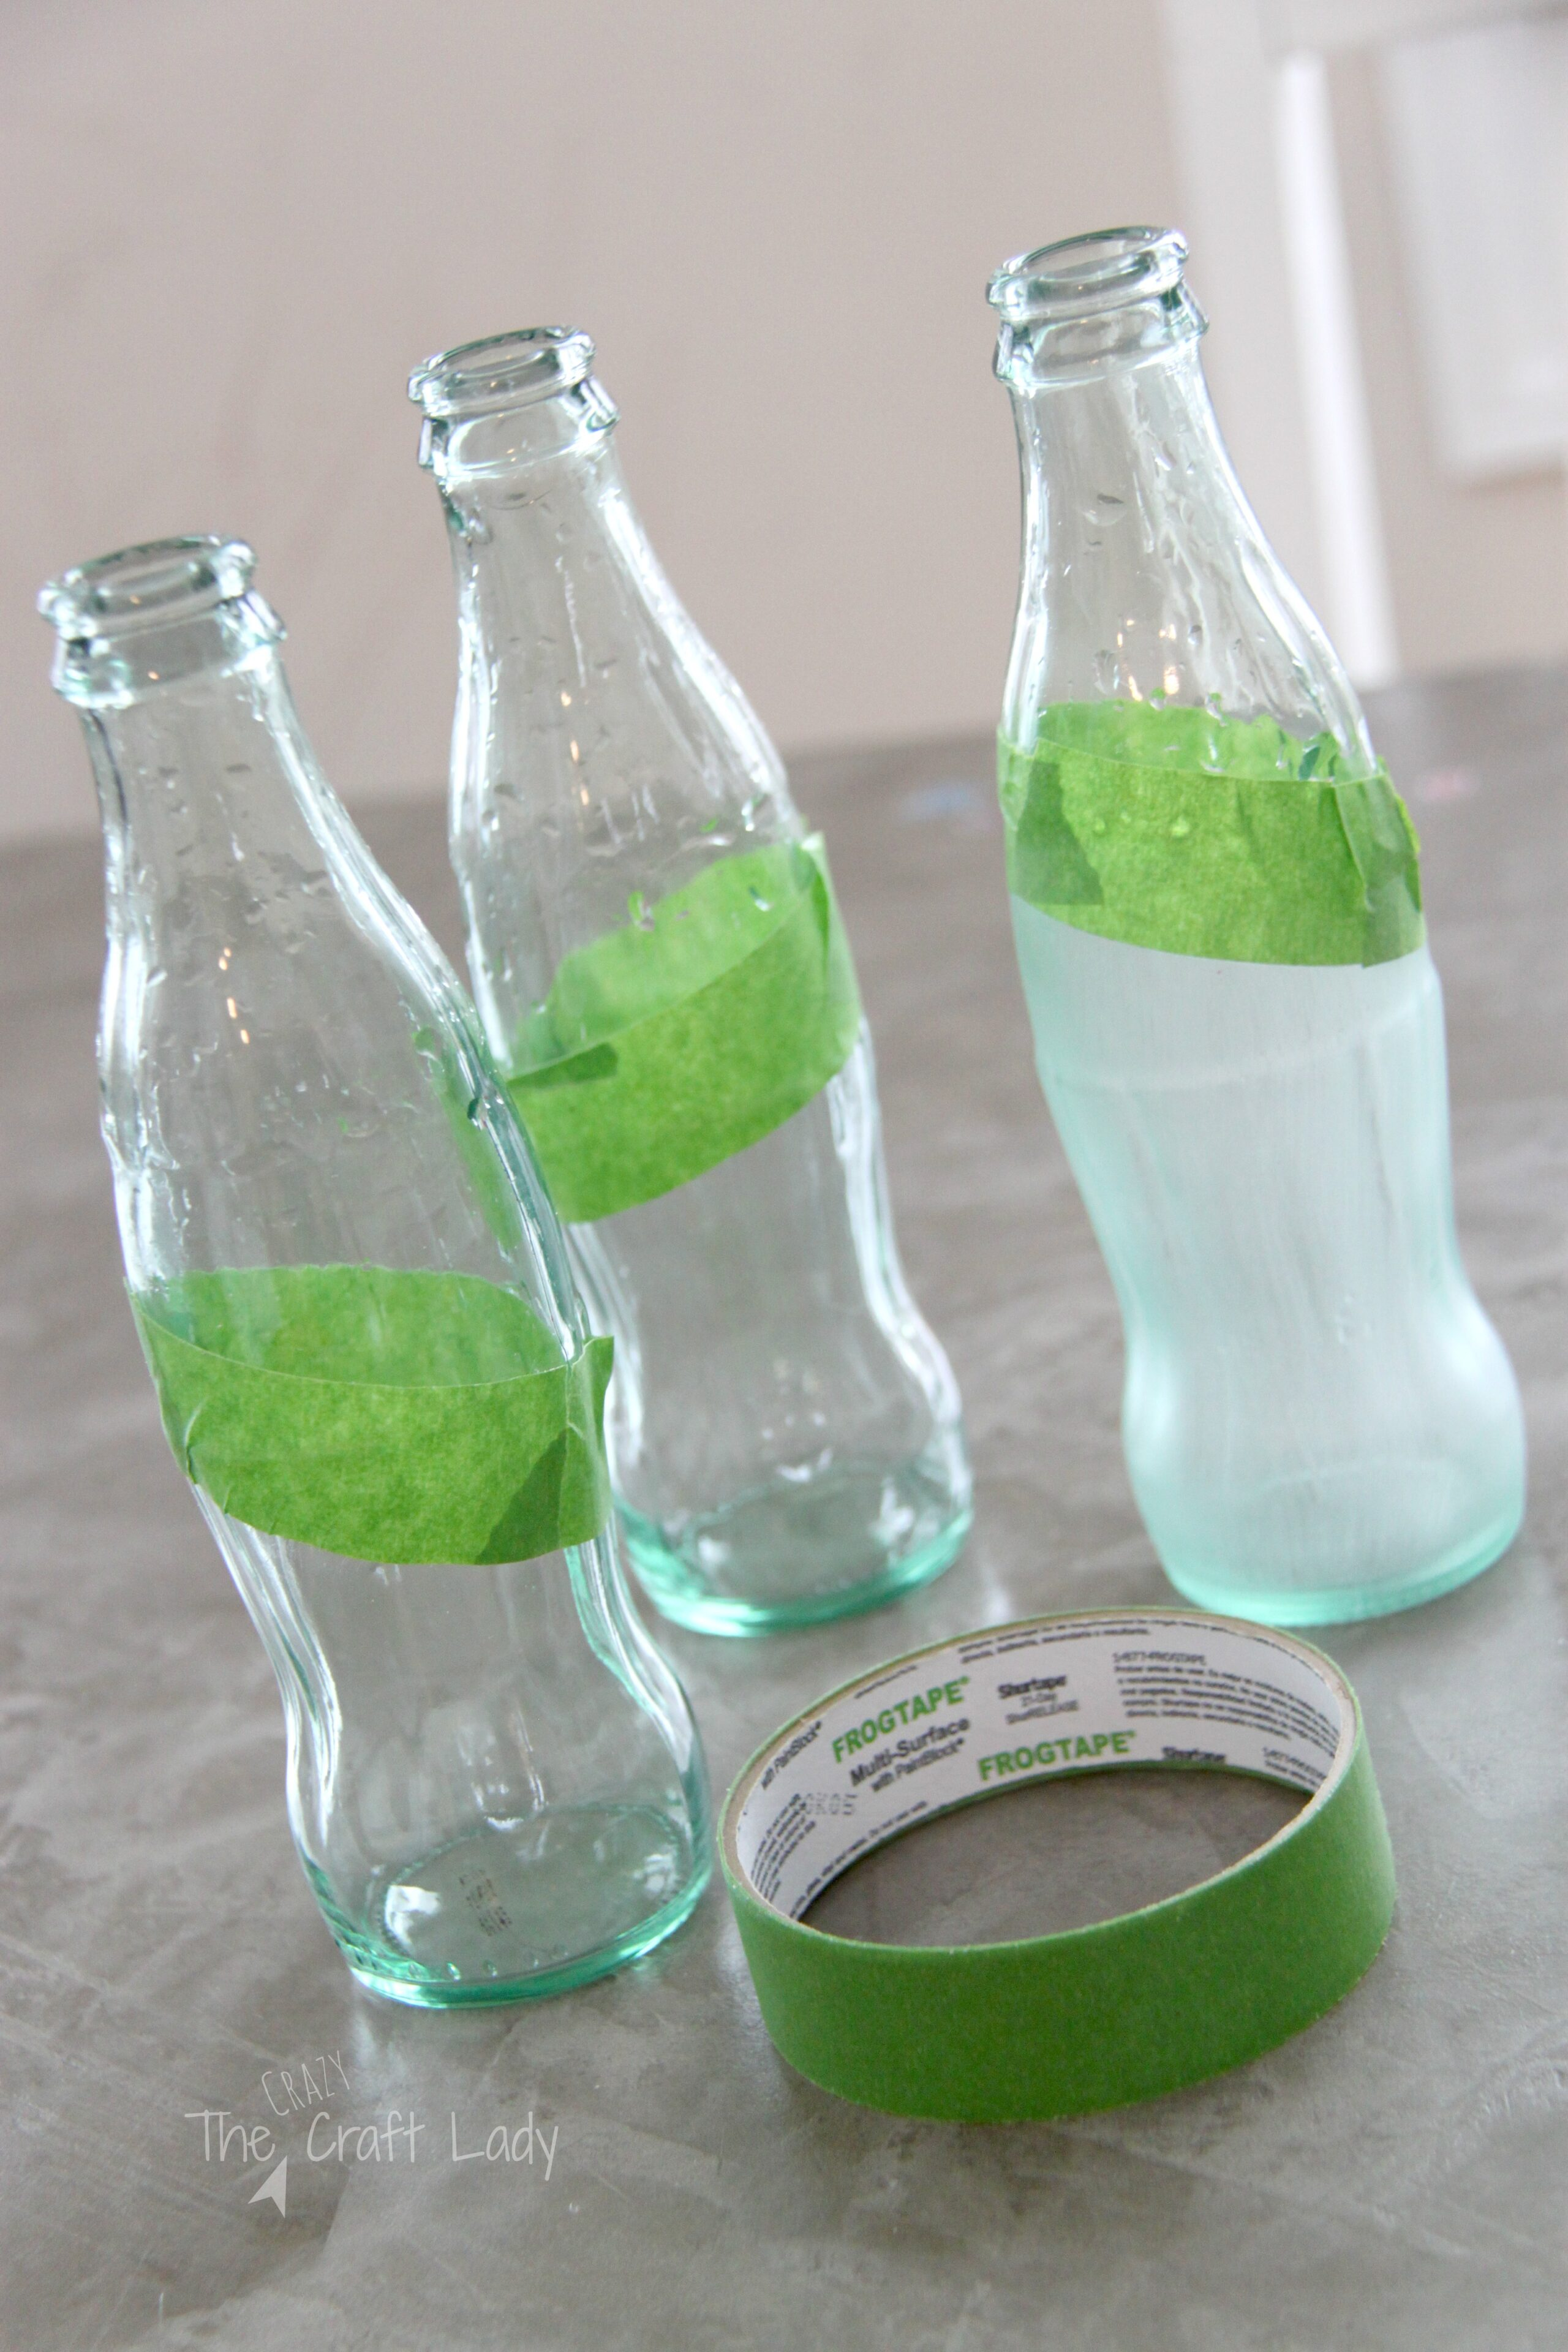 Sea glass painted coca cola bottles the crazy craft lady for Paint to use on glass